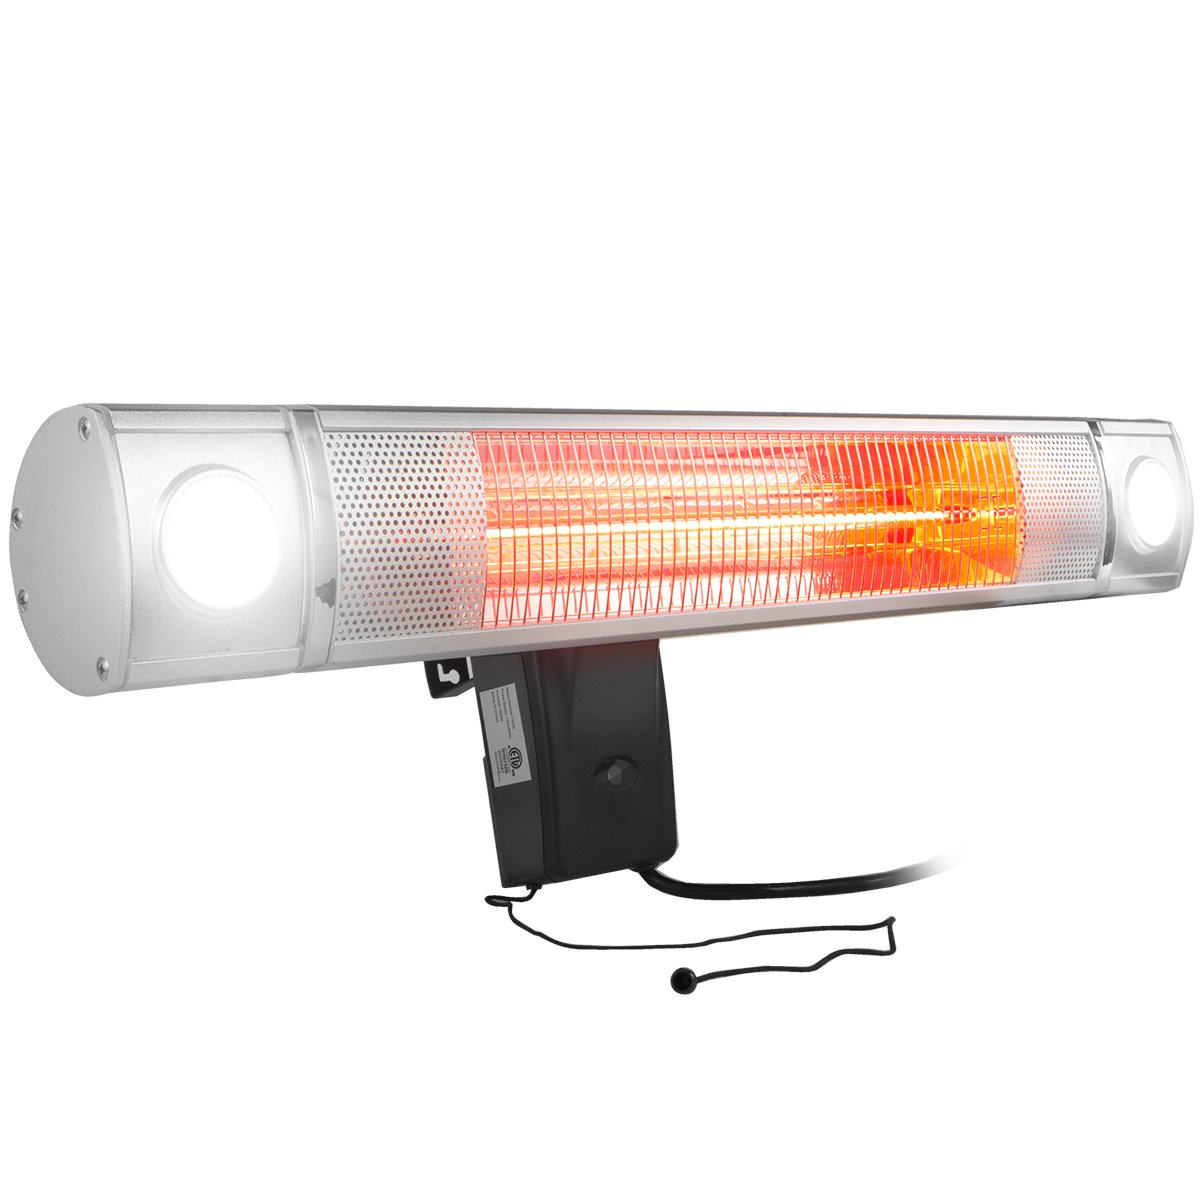 XtremepowerUS Wall-mounted Infrared 1500 Watt Heater, 28'' by XtremepowerUS